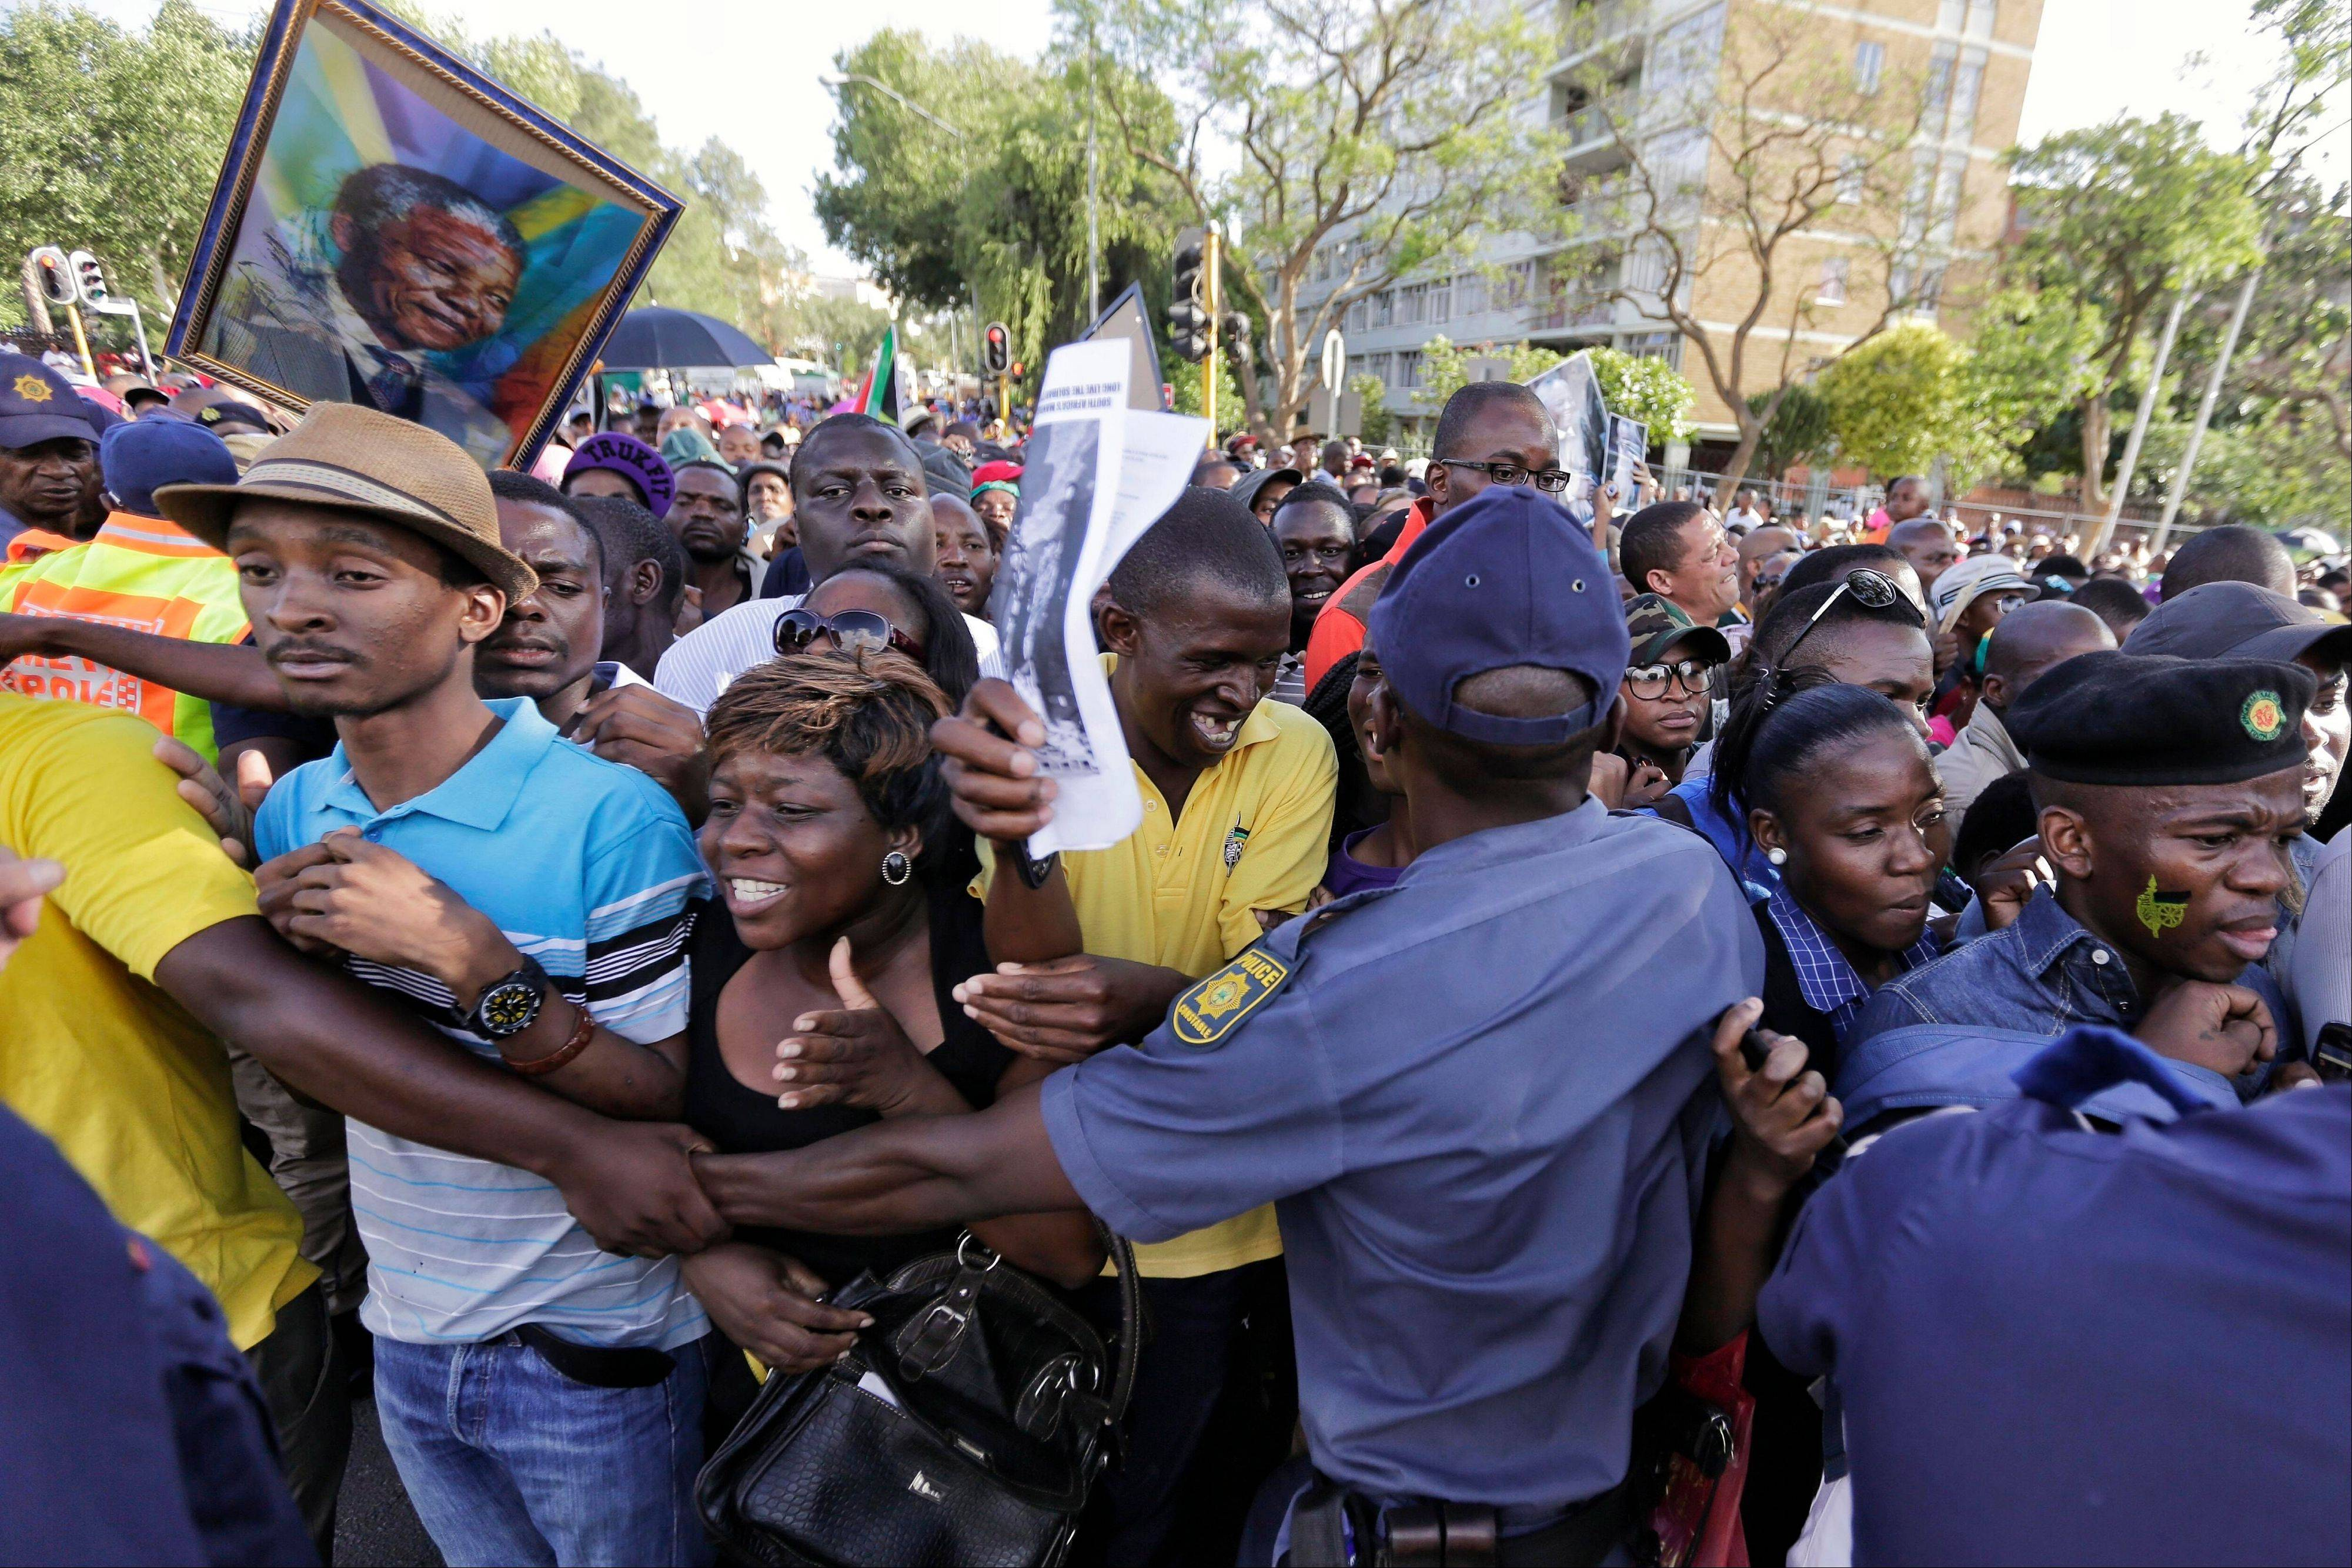 Police officers try to control the crowd after they announced they would reopen the entrance to the Union Buildings to pay their respects to Nelson Mandela, in Pretoria, South Africa, Friday, Dec. 13, 2013. Former South African President Nelson Mandela is on the third and final day of lying in state at the Union Buildings in Pretoria.